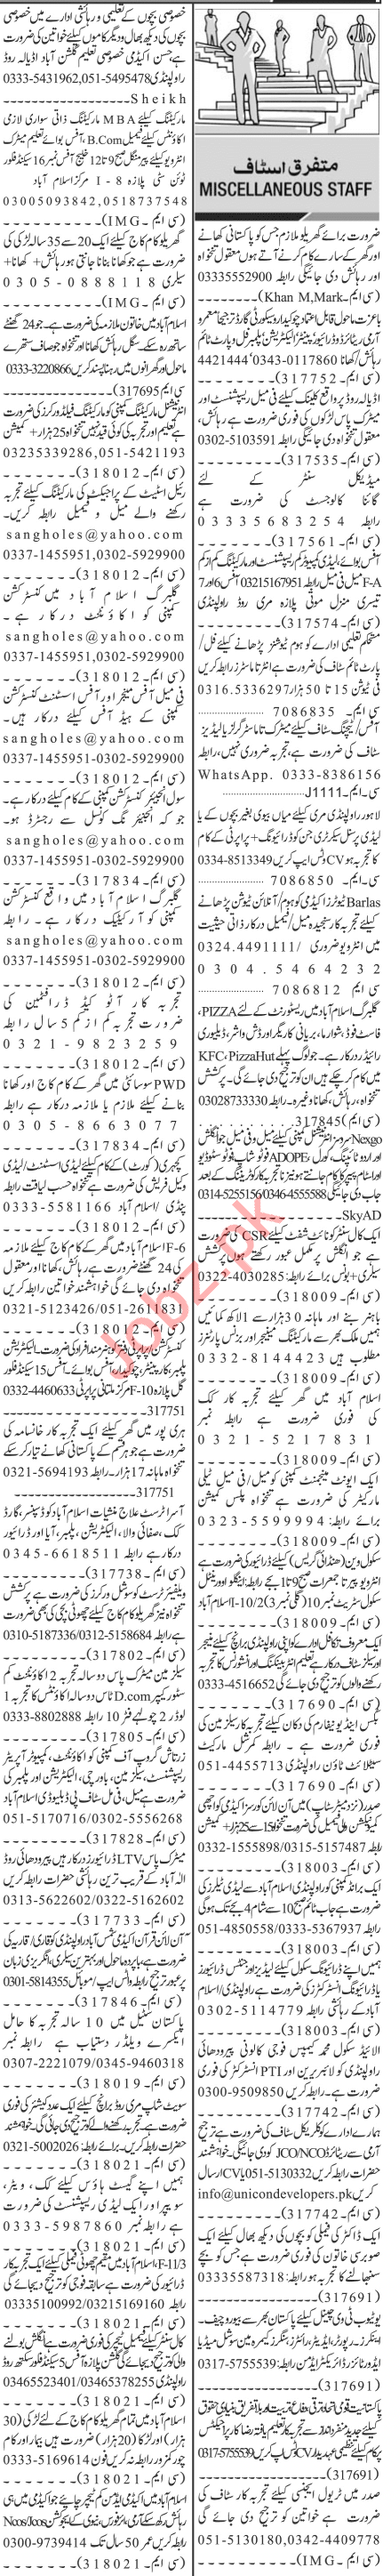 Jang Sunday Classified Ads 13 Sep 2020 for Management